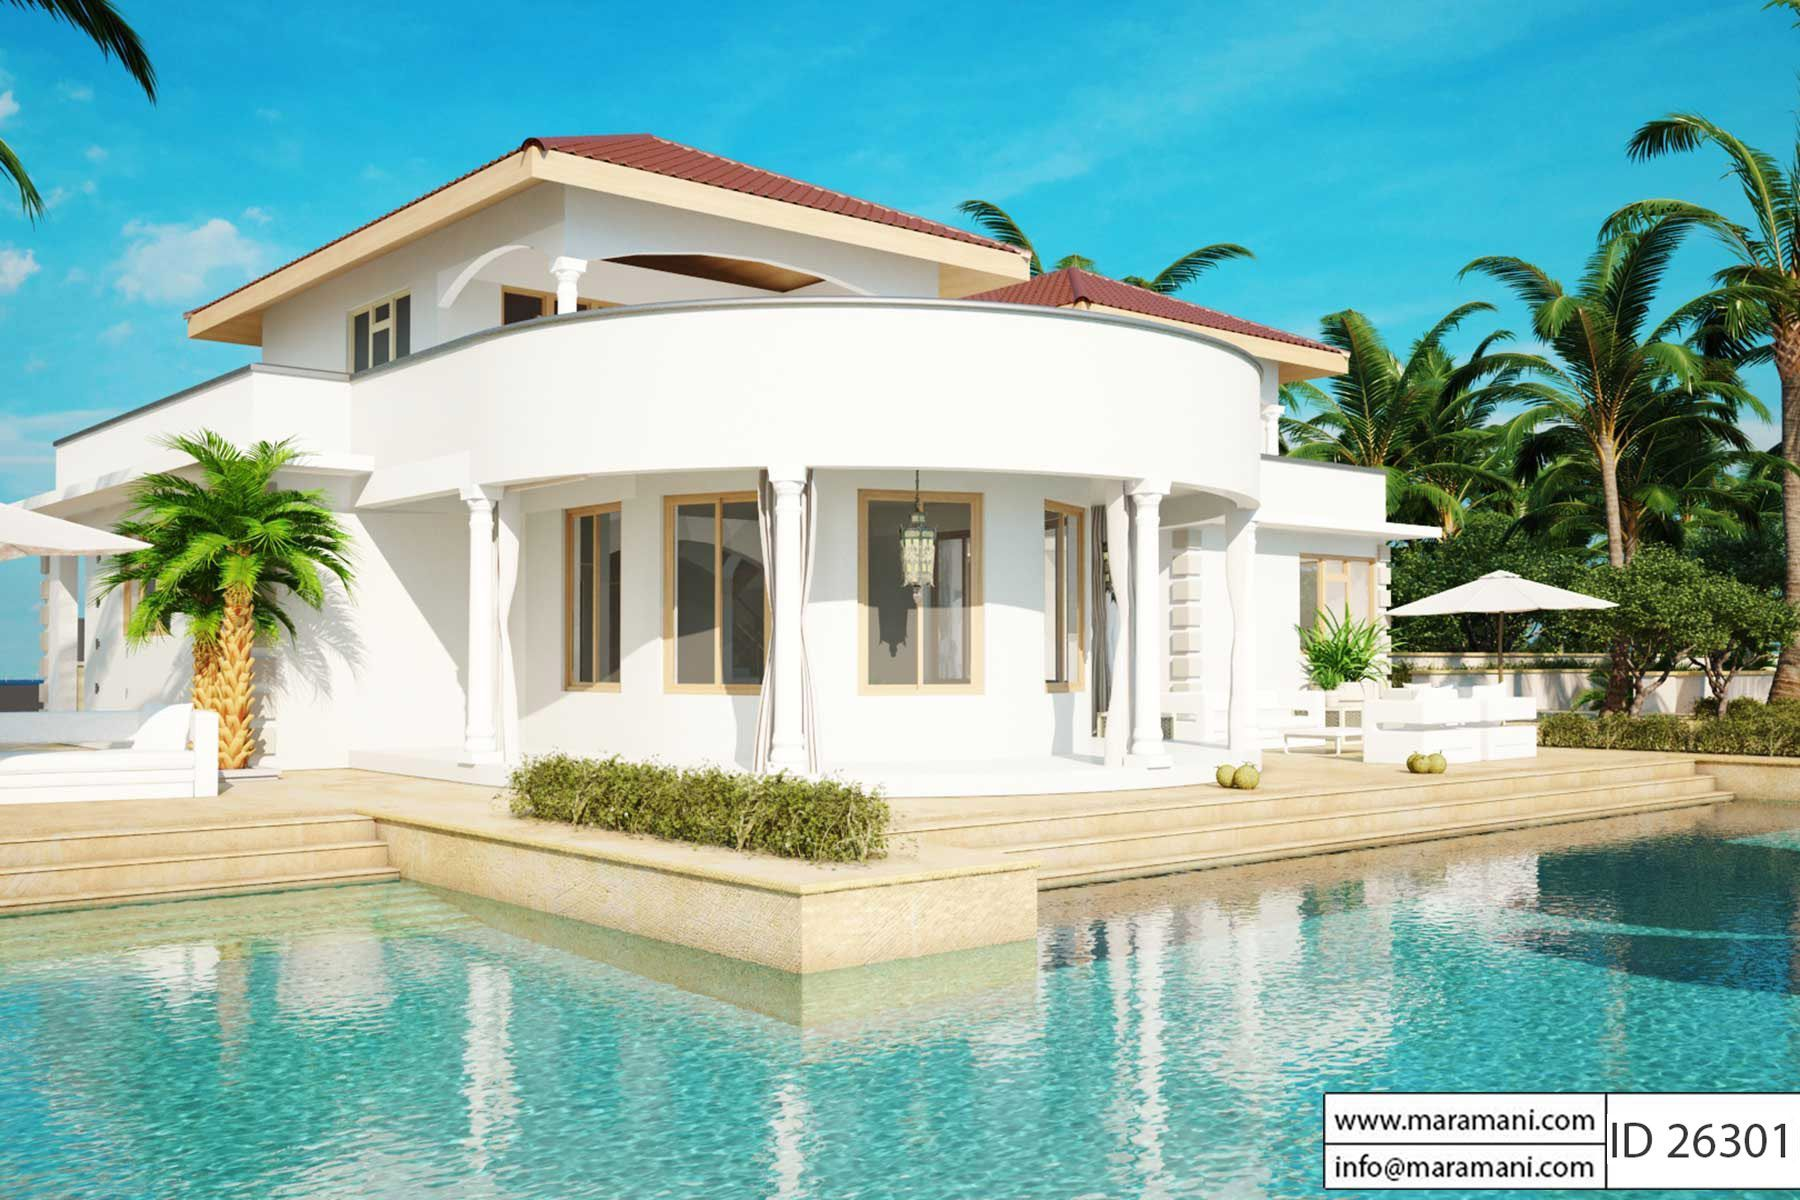 2 story house with pool - ID 26301 - House Plans | Pool ...